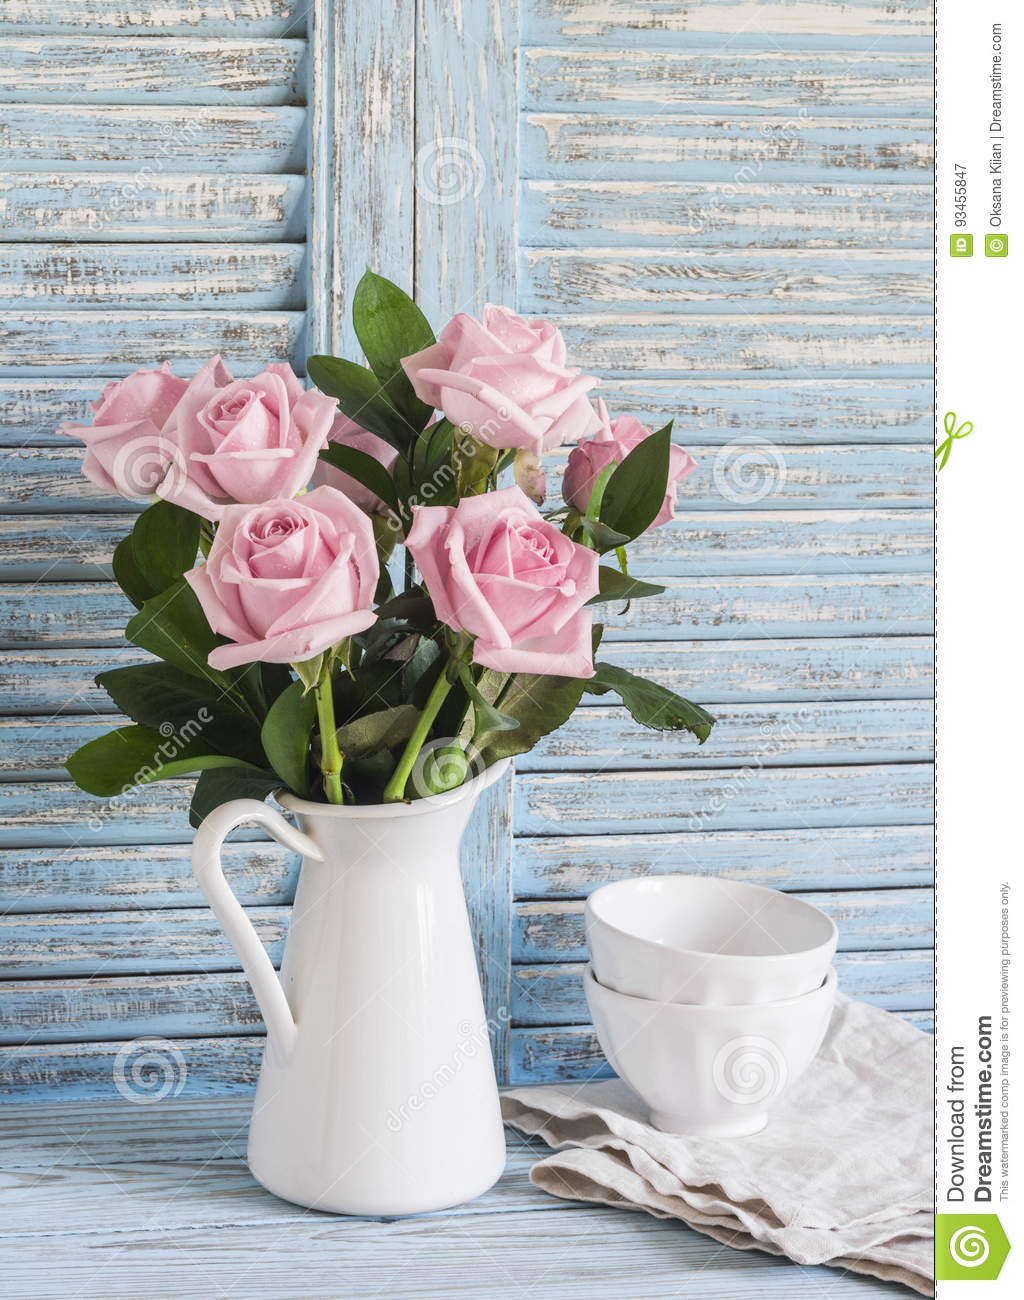 Pink Roses In A White Enameled Pitcher And Ceramic White Bowls On ...